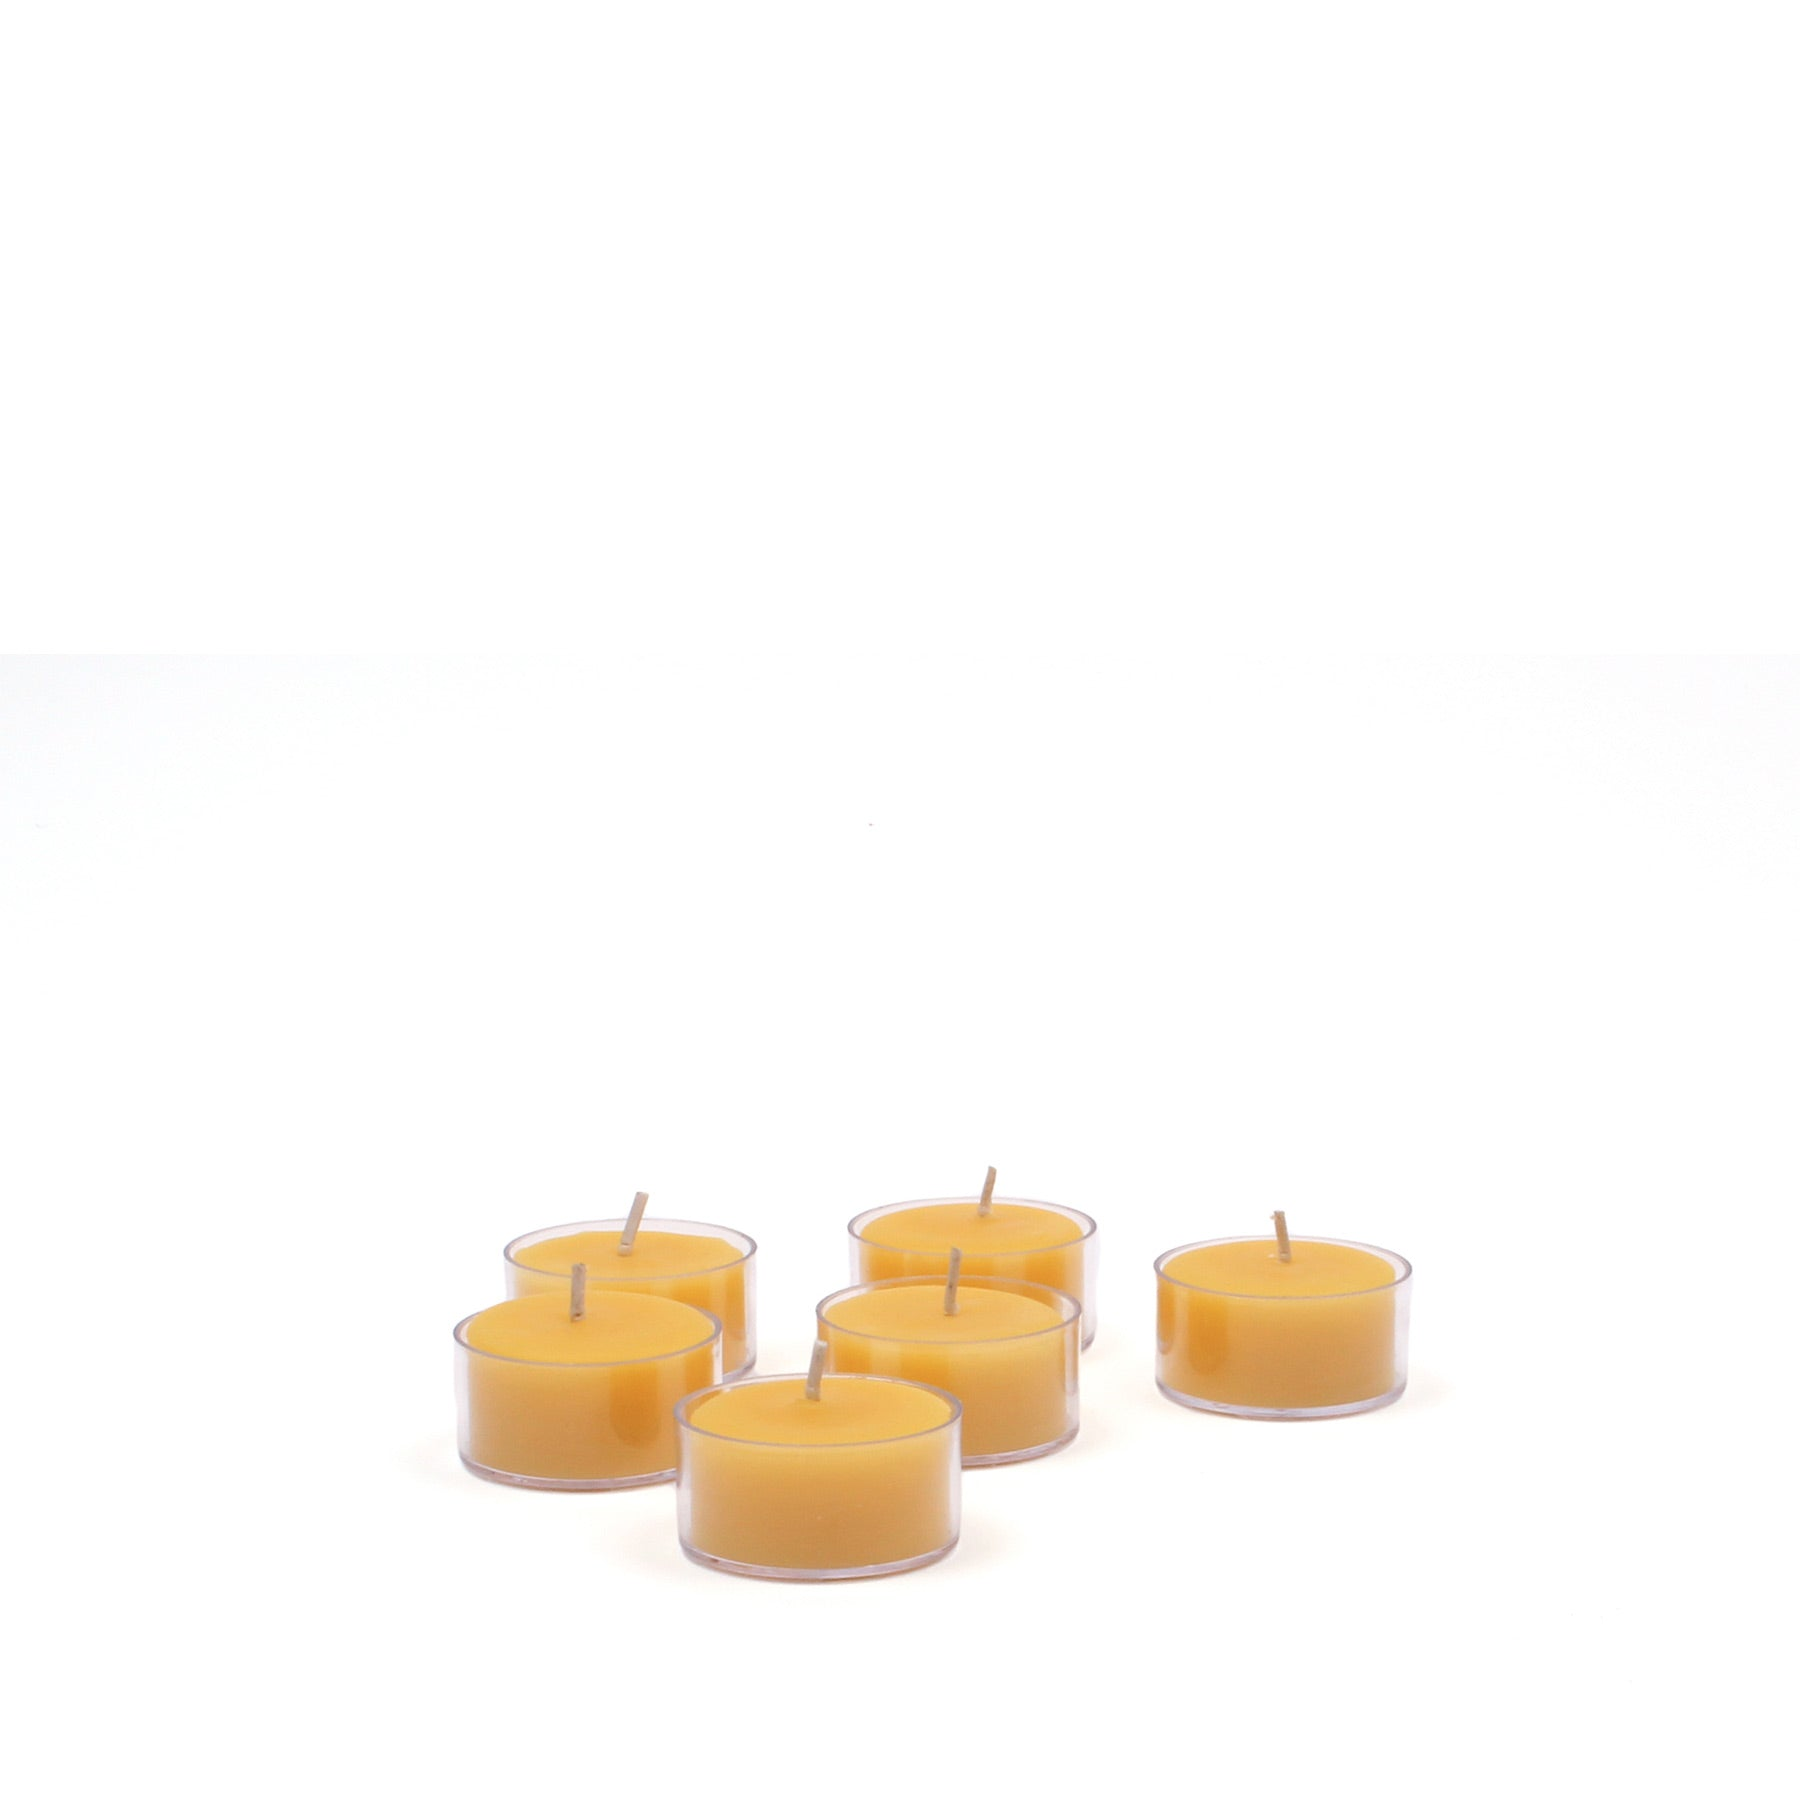 Beeswax Tea Lights (Set of 6) Zoom Image 1